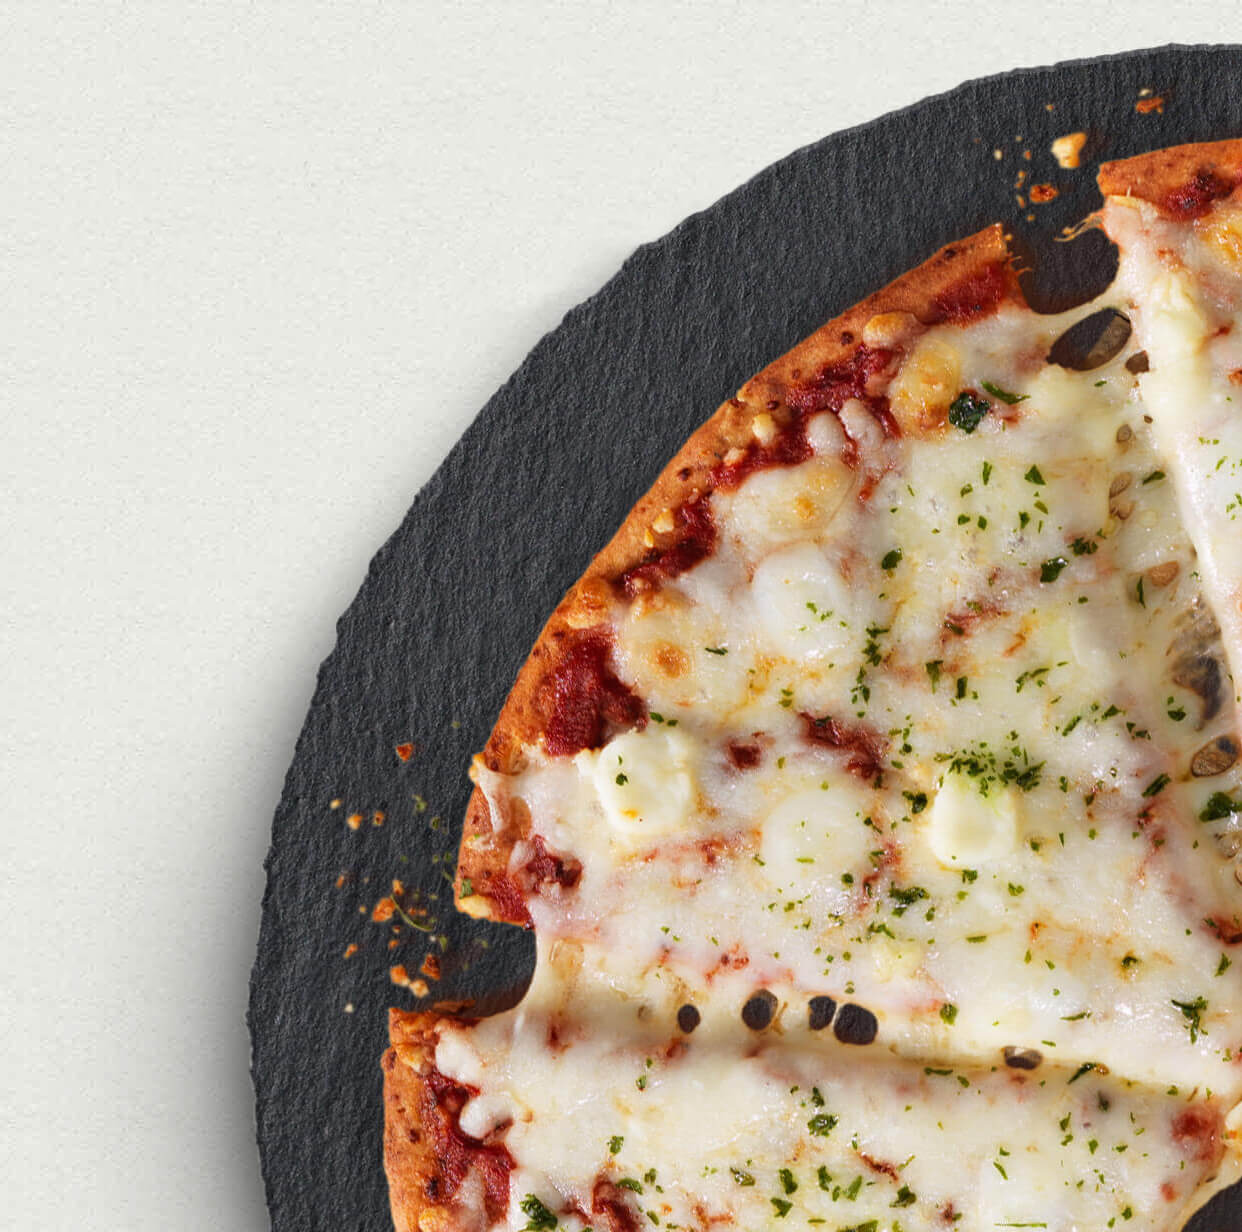 Photo of three slices of cheese pizza